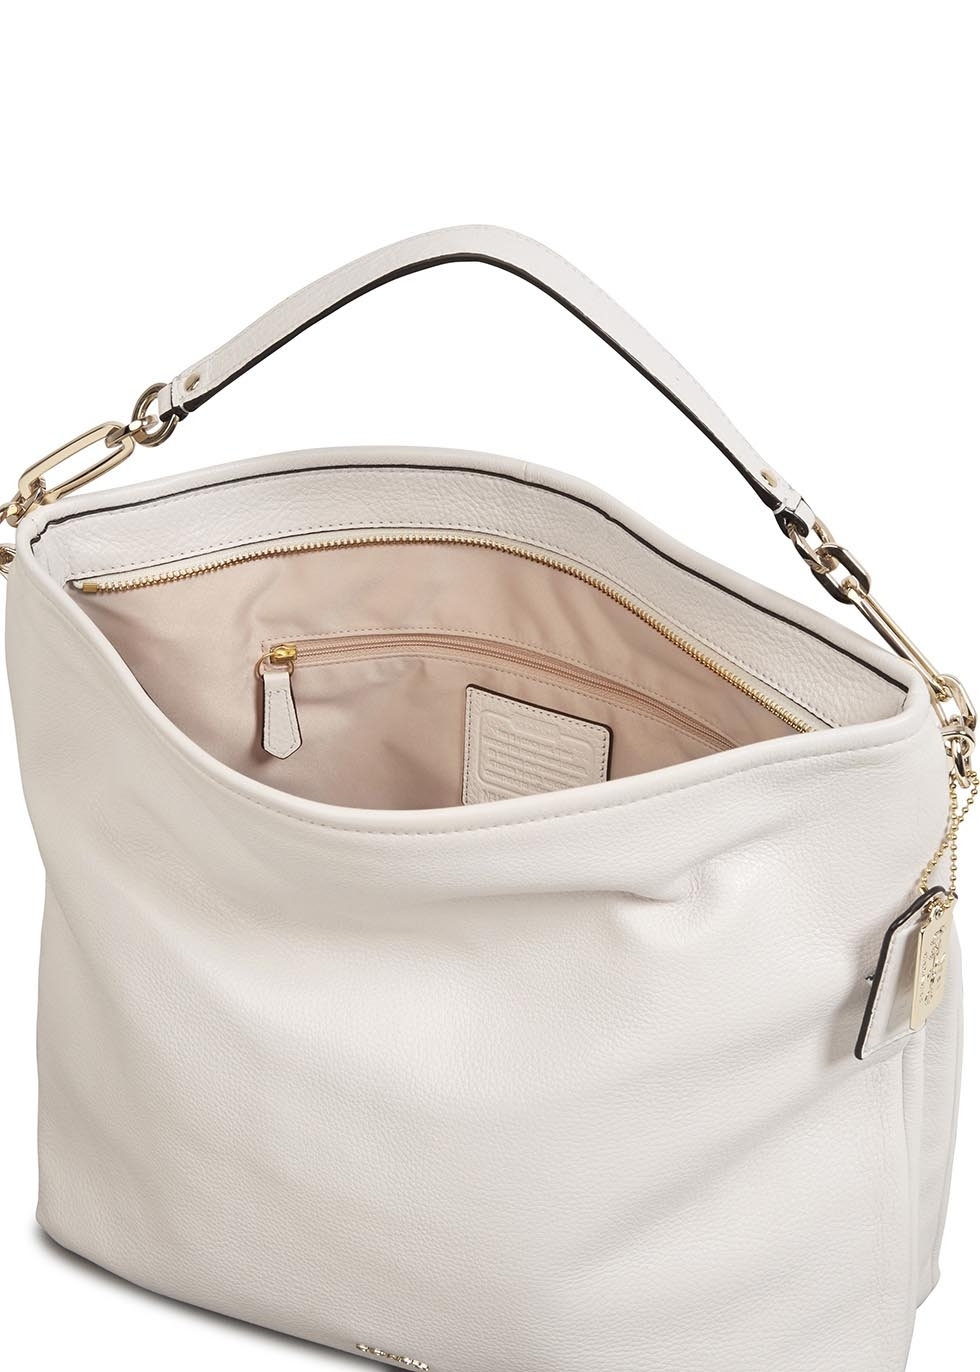 COACH Madison White Grained Leather Hobo Bag in White - Lyst 93081829bf